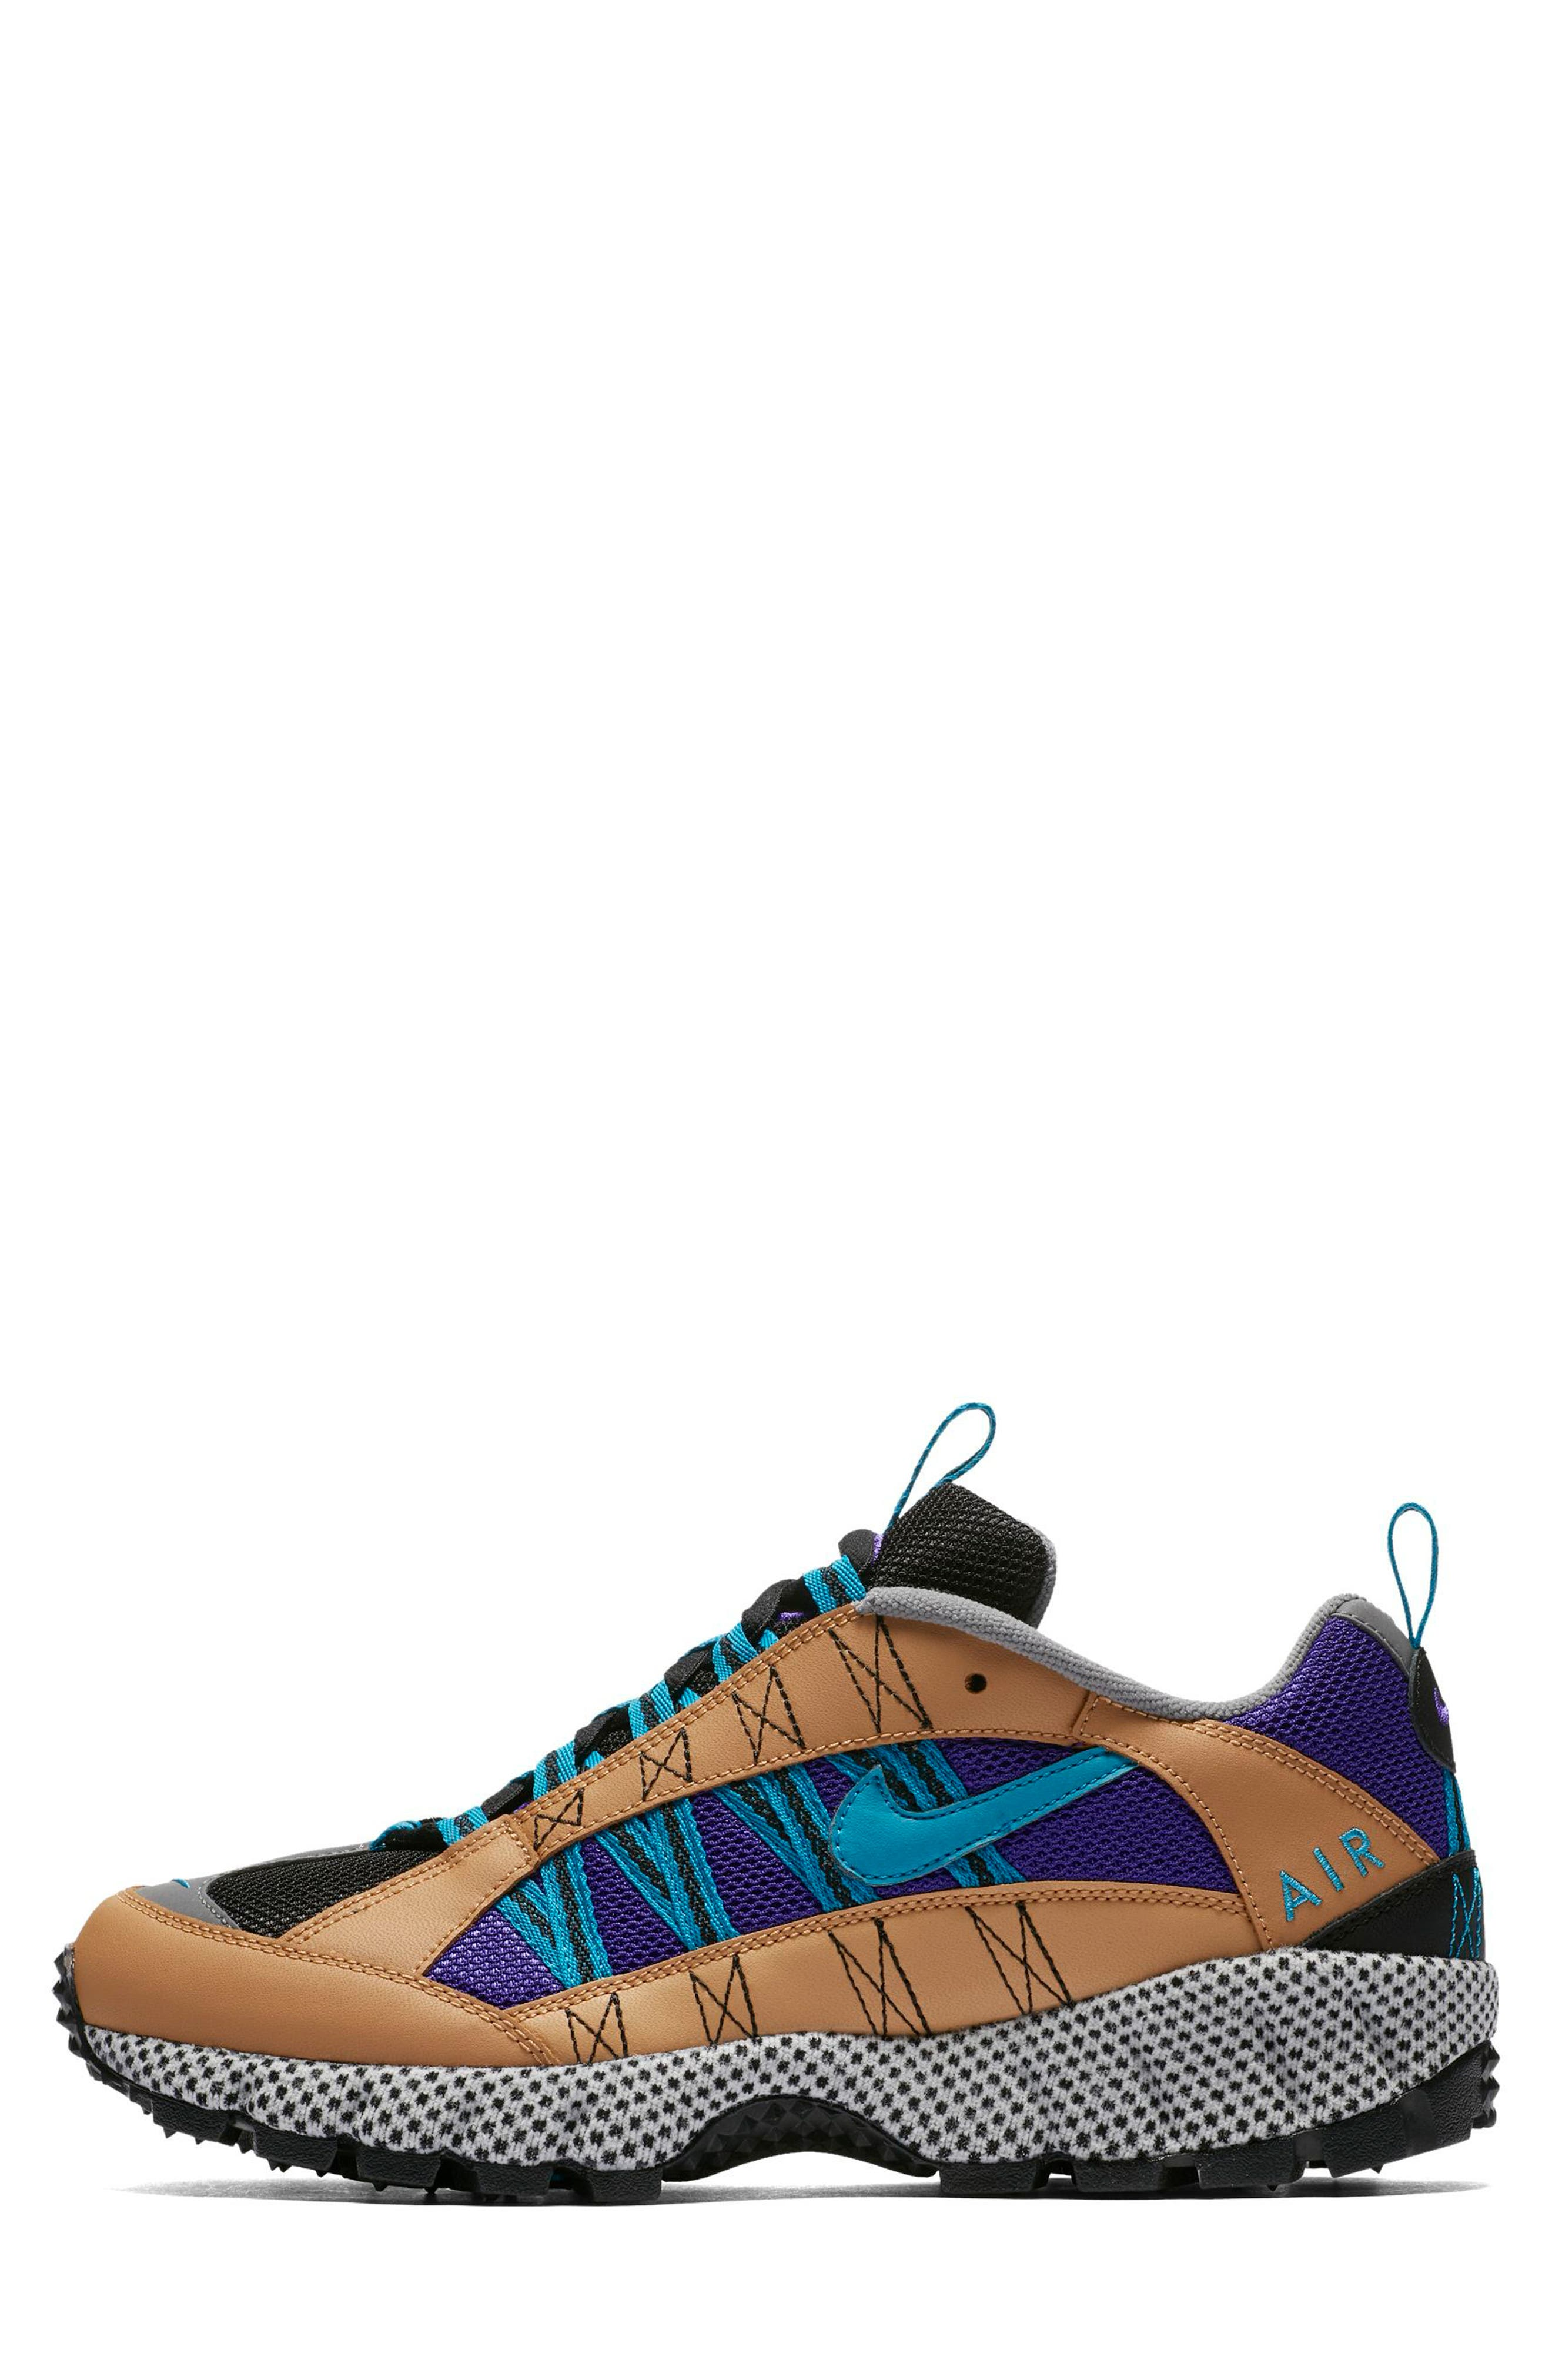 Air Humara 17 QS Sneaker,                             Alternate thumbnail 2, color,                             Gold/ Turquoise-Purple